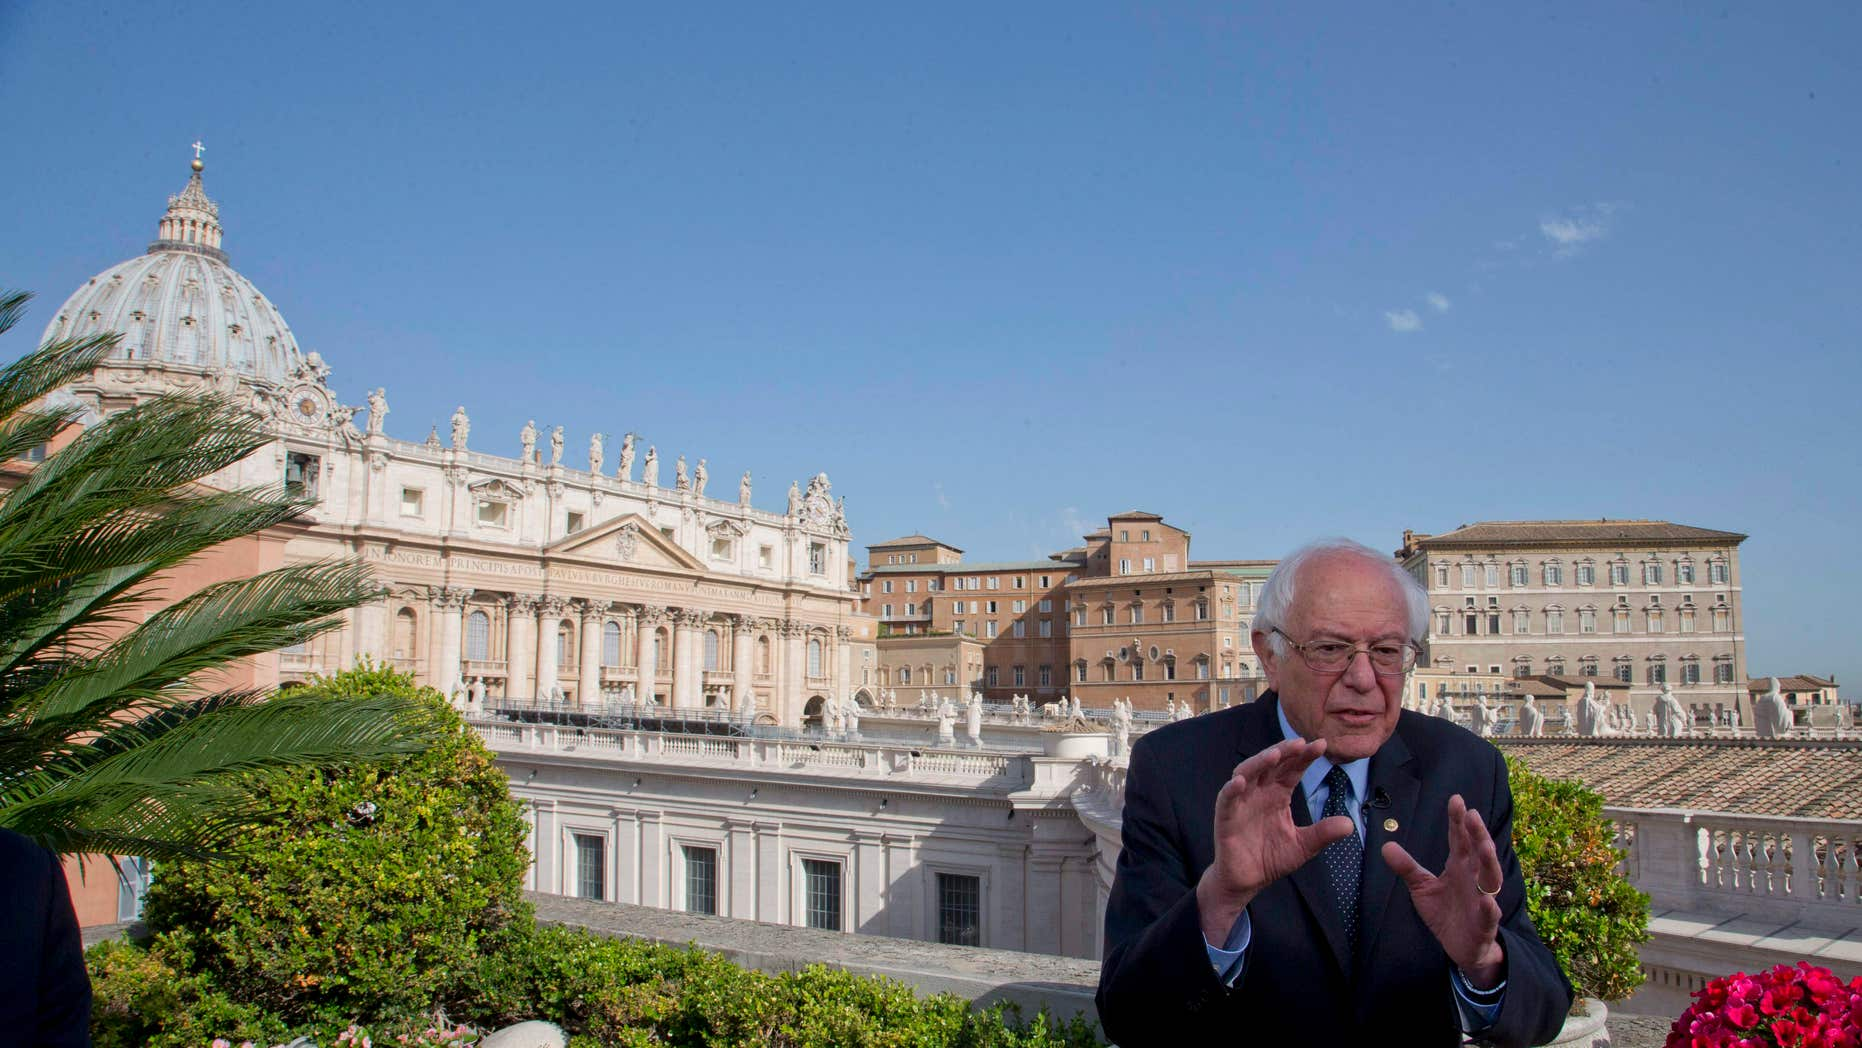 April 16, 2016: US presidential candidate Bernie Sanders, backdropped by St. Peter's Basilica, talks during an interview with the Associated Press, at the Vatican.